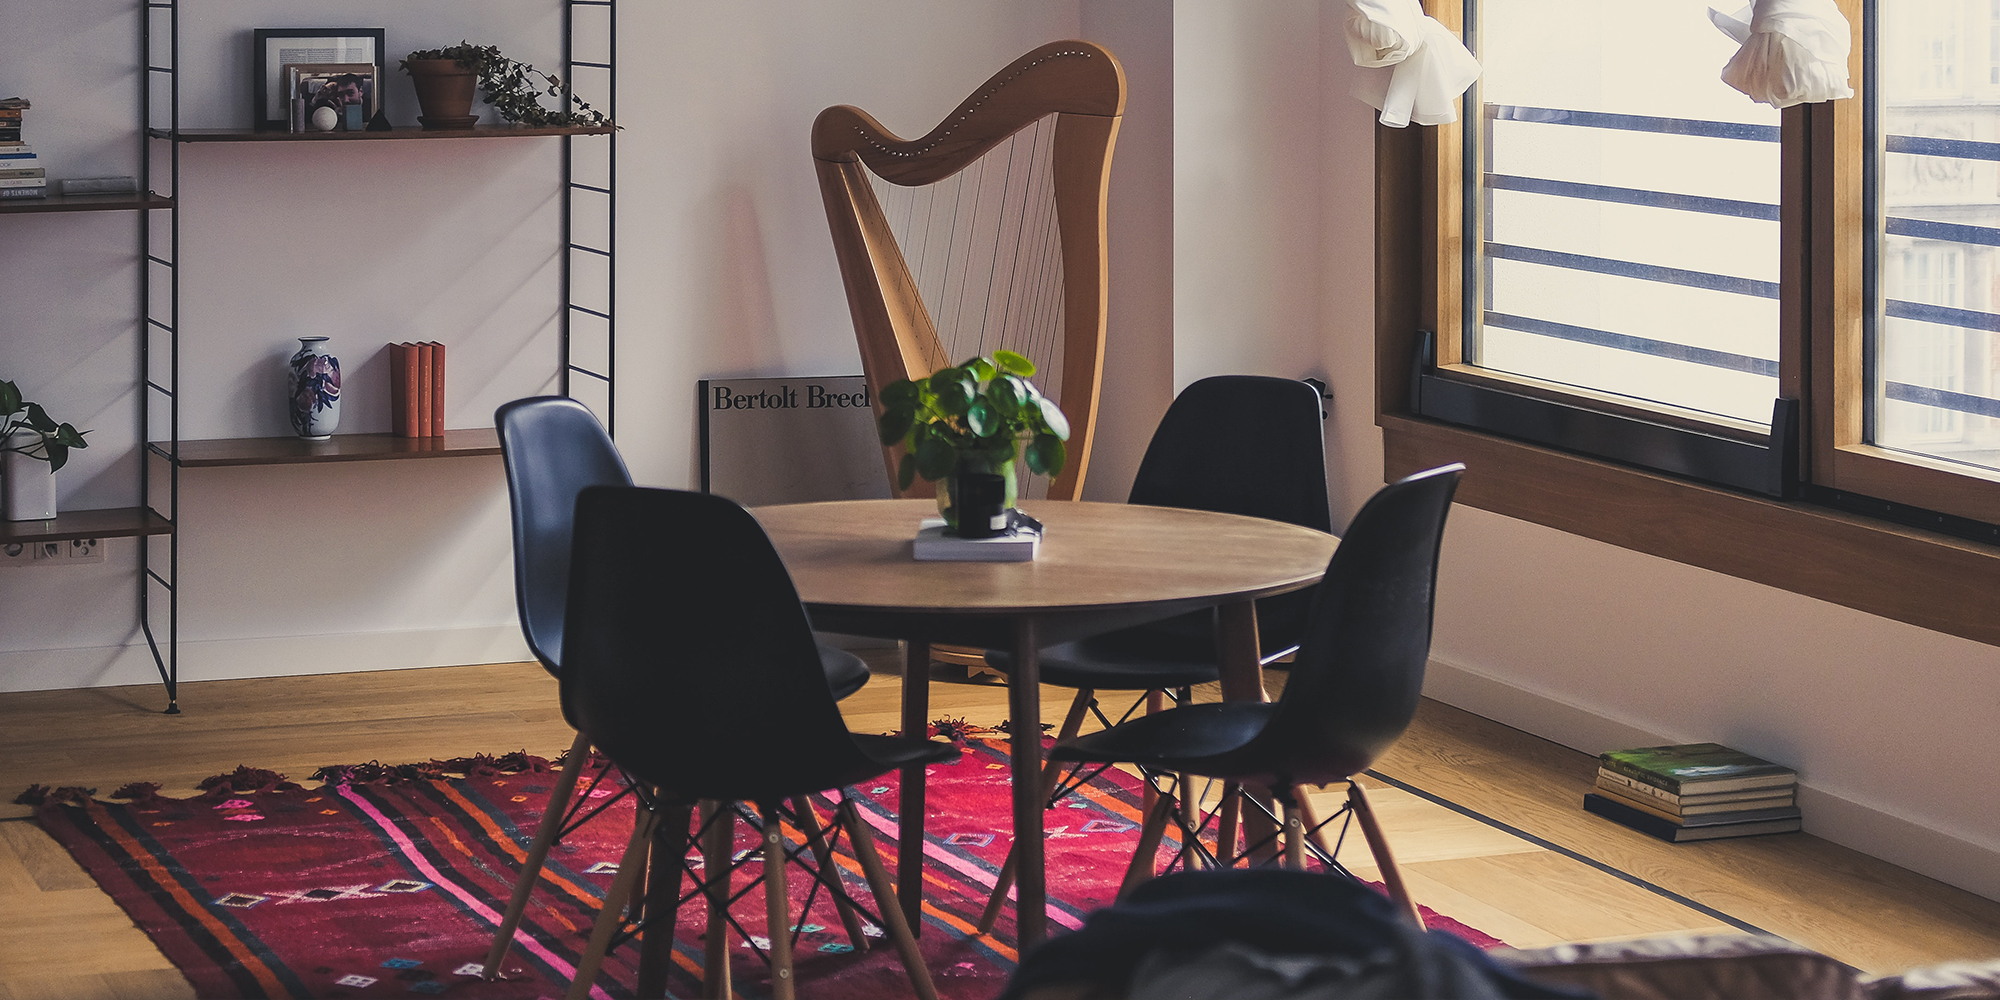 Dining Room Featuring DSW Chairs